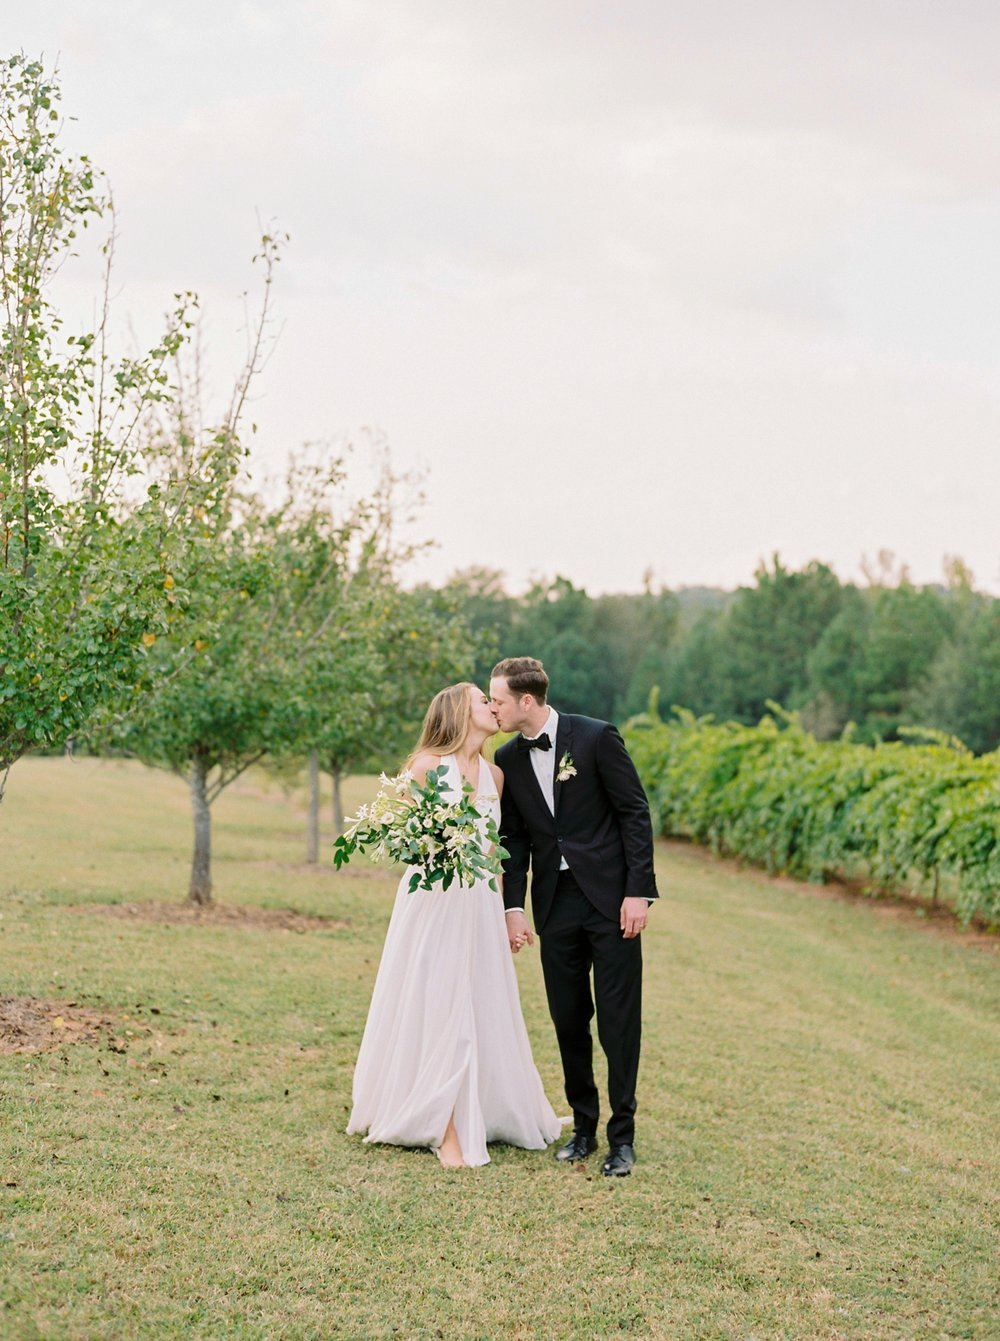 Calgary wedding photographers | georgia wedding photographers | fine art film | Justine Milton Photography | georgia wedding | bride and groom portraits | bouquet | pastel wedding inspiration